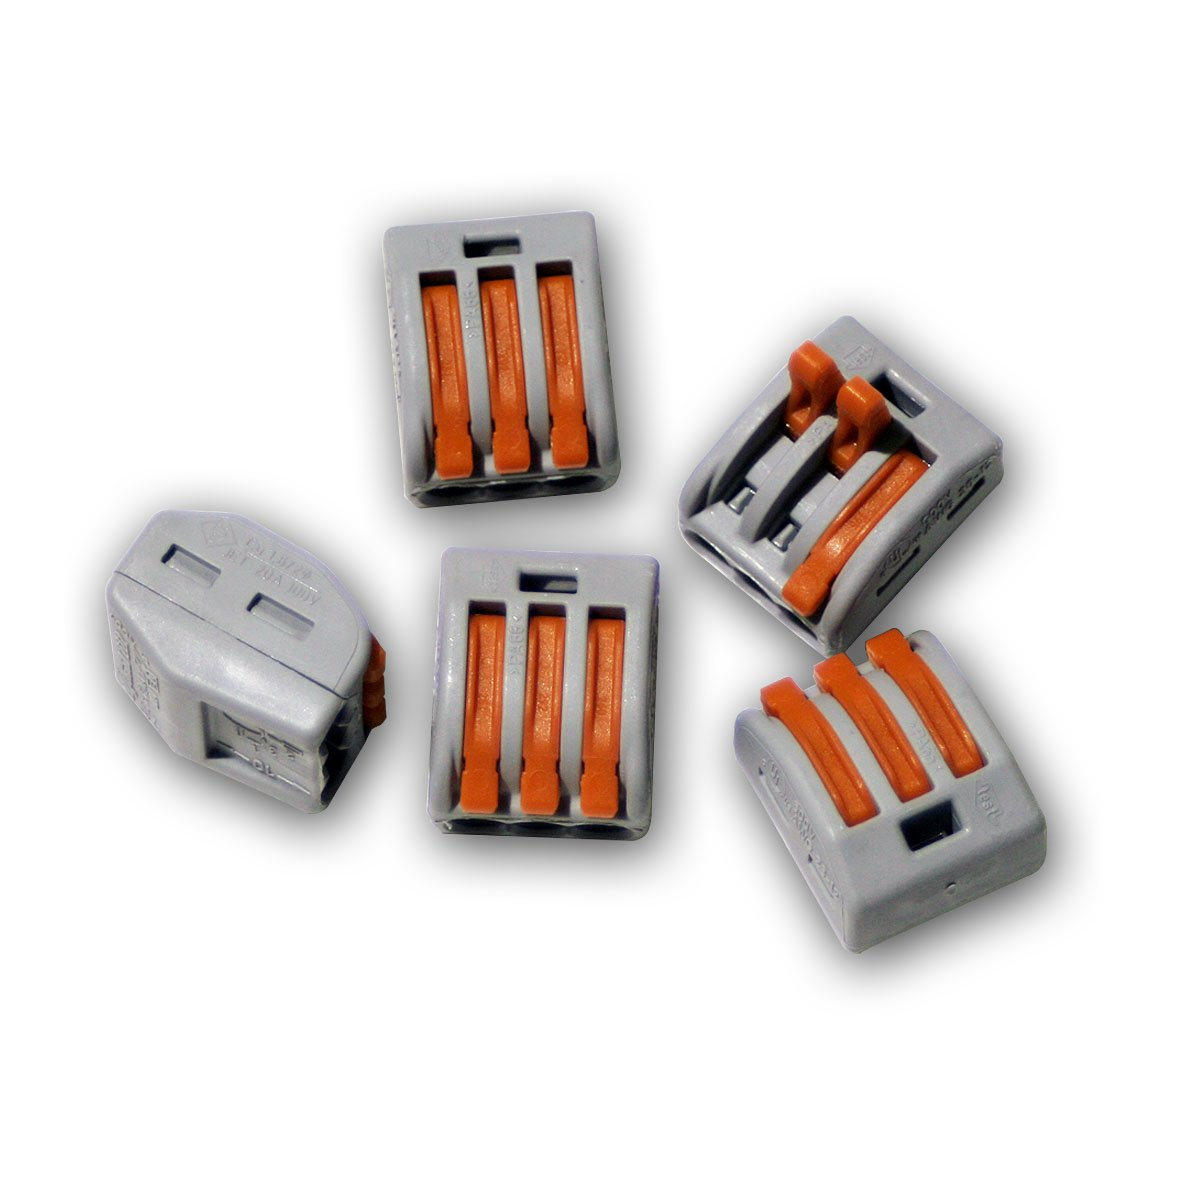 10 x Wago Connector 3 conductors with Betaetigungshebel 0, 8-2,5 MM ² 5 MM ² 222-413